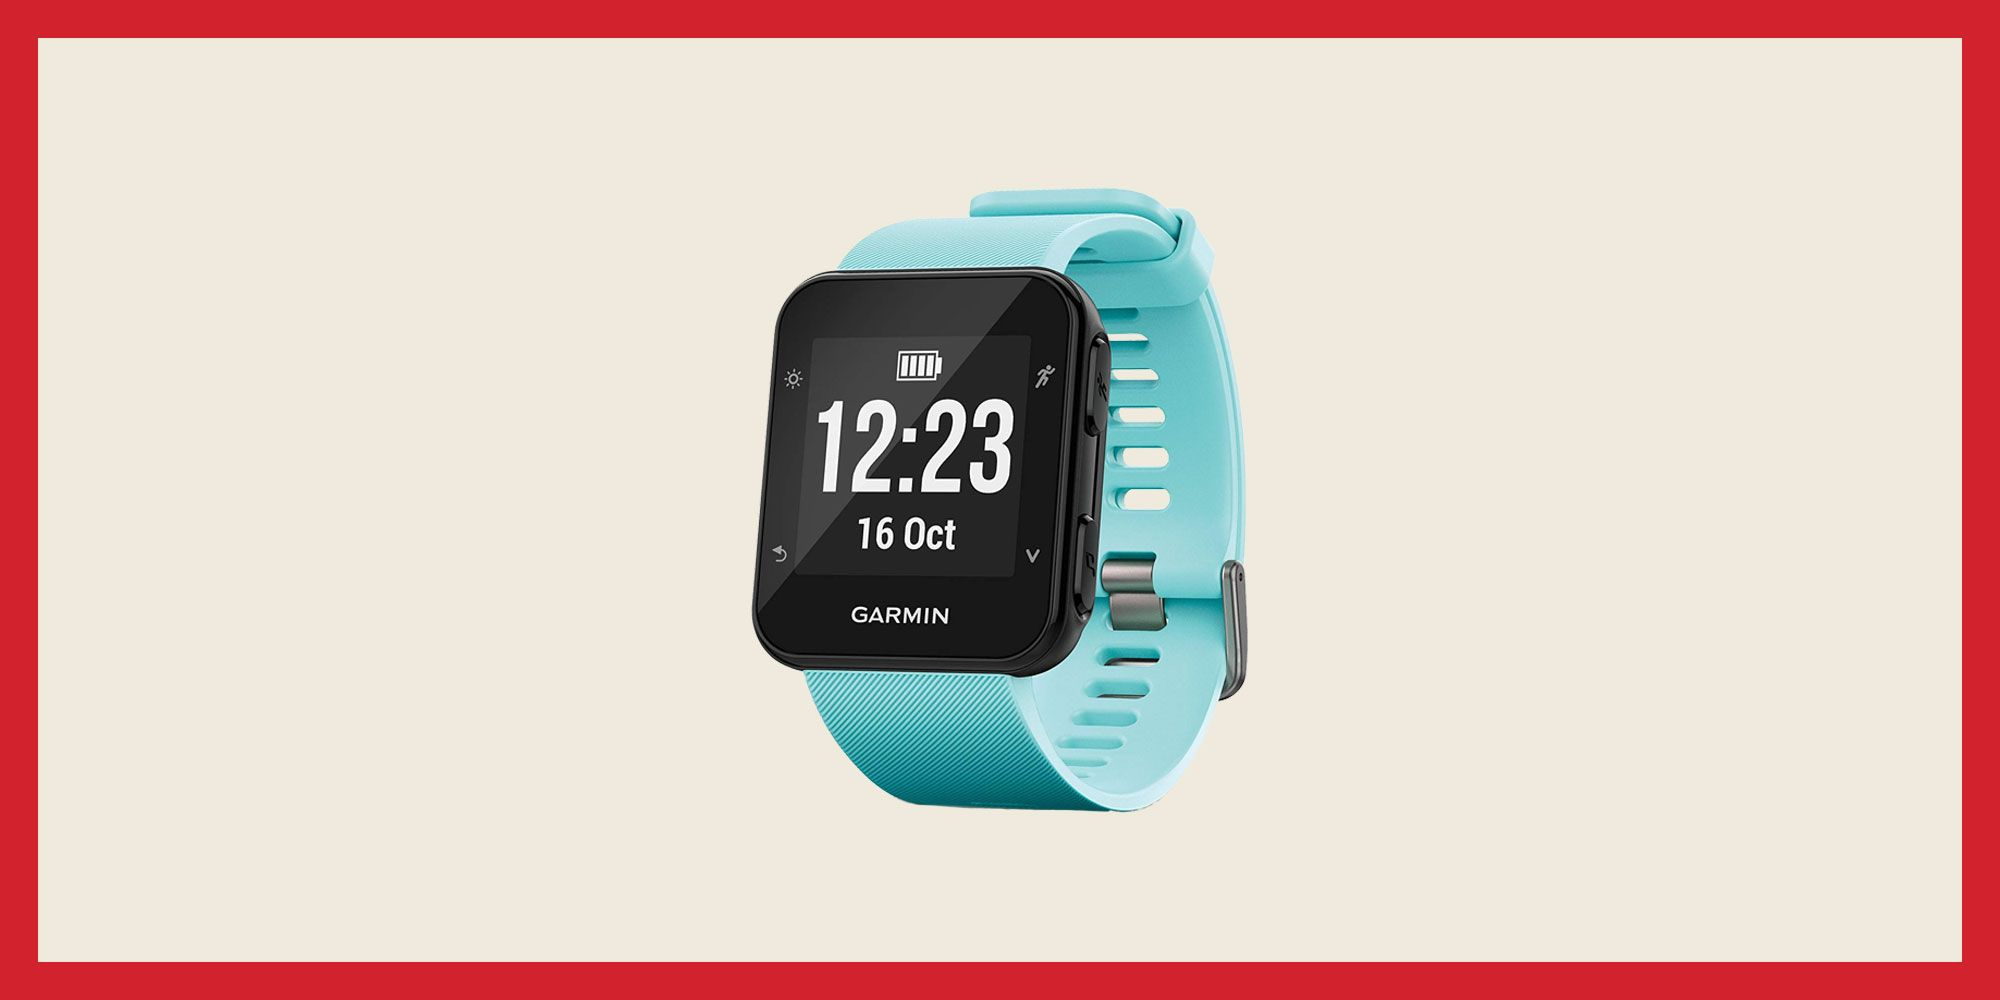 Garmin's Forerunner 35 Fitness Tracker Is Up To $70 Off On Amazon Right Now